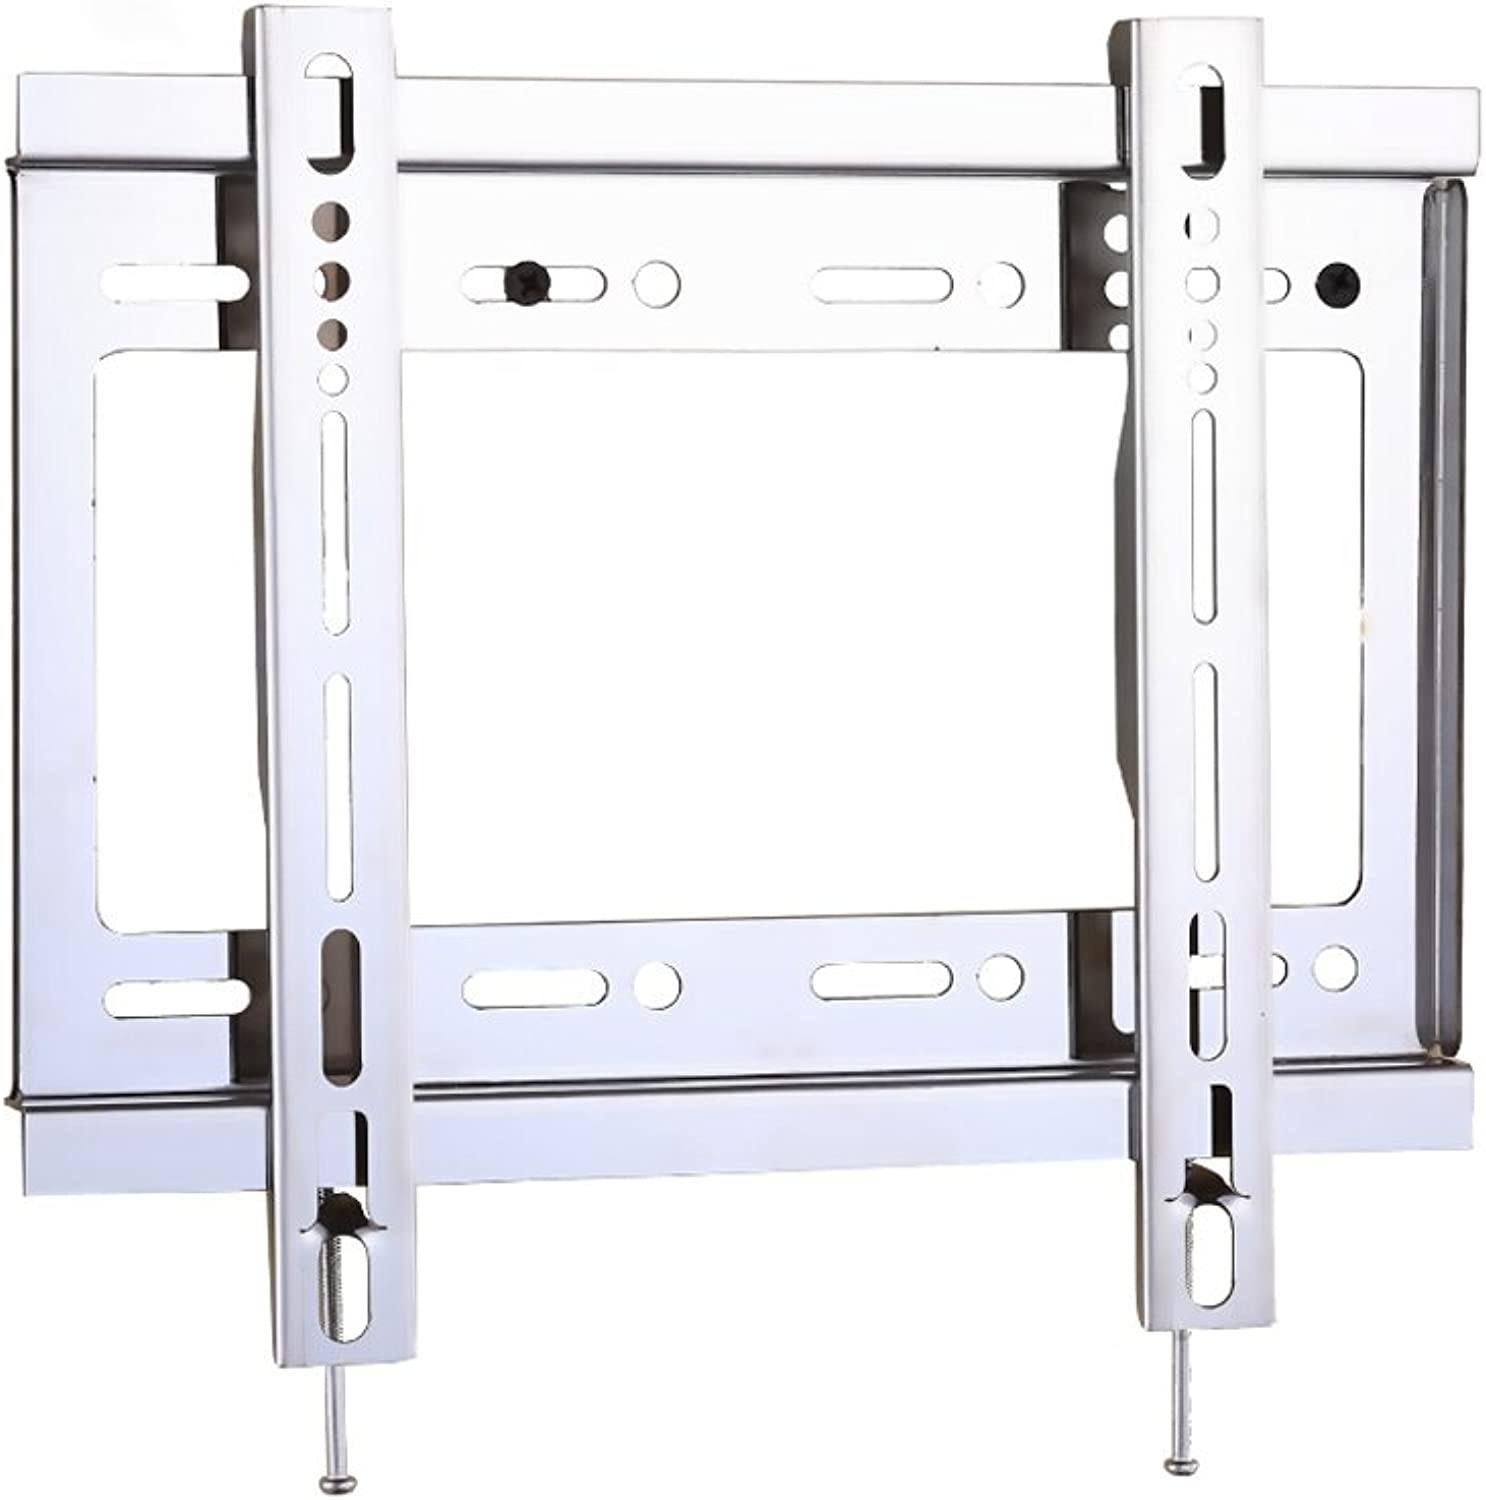 YAXIAO TV Rack Universal Stainless Steel LCD, Wall-Mounted Fixed TV Bracket, 14-32 Inches, 26-55 Inches, 32-65 Inches Wall Shelf (Size   14-32Inch)